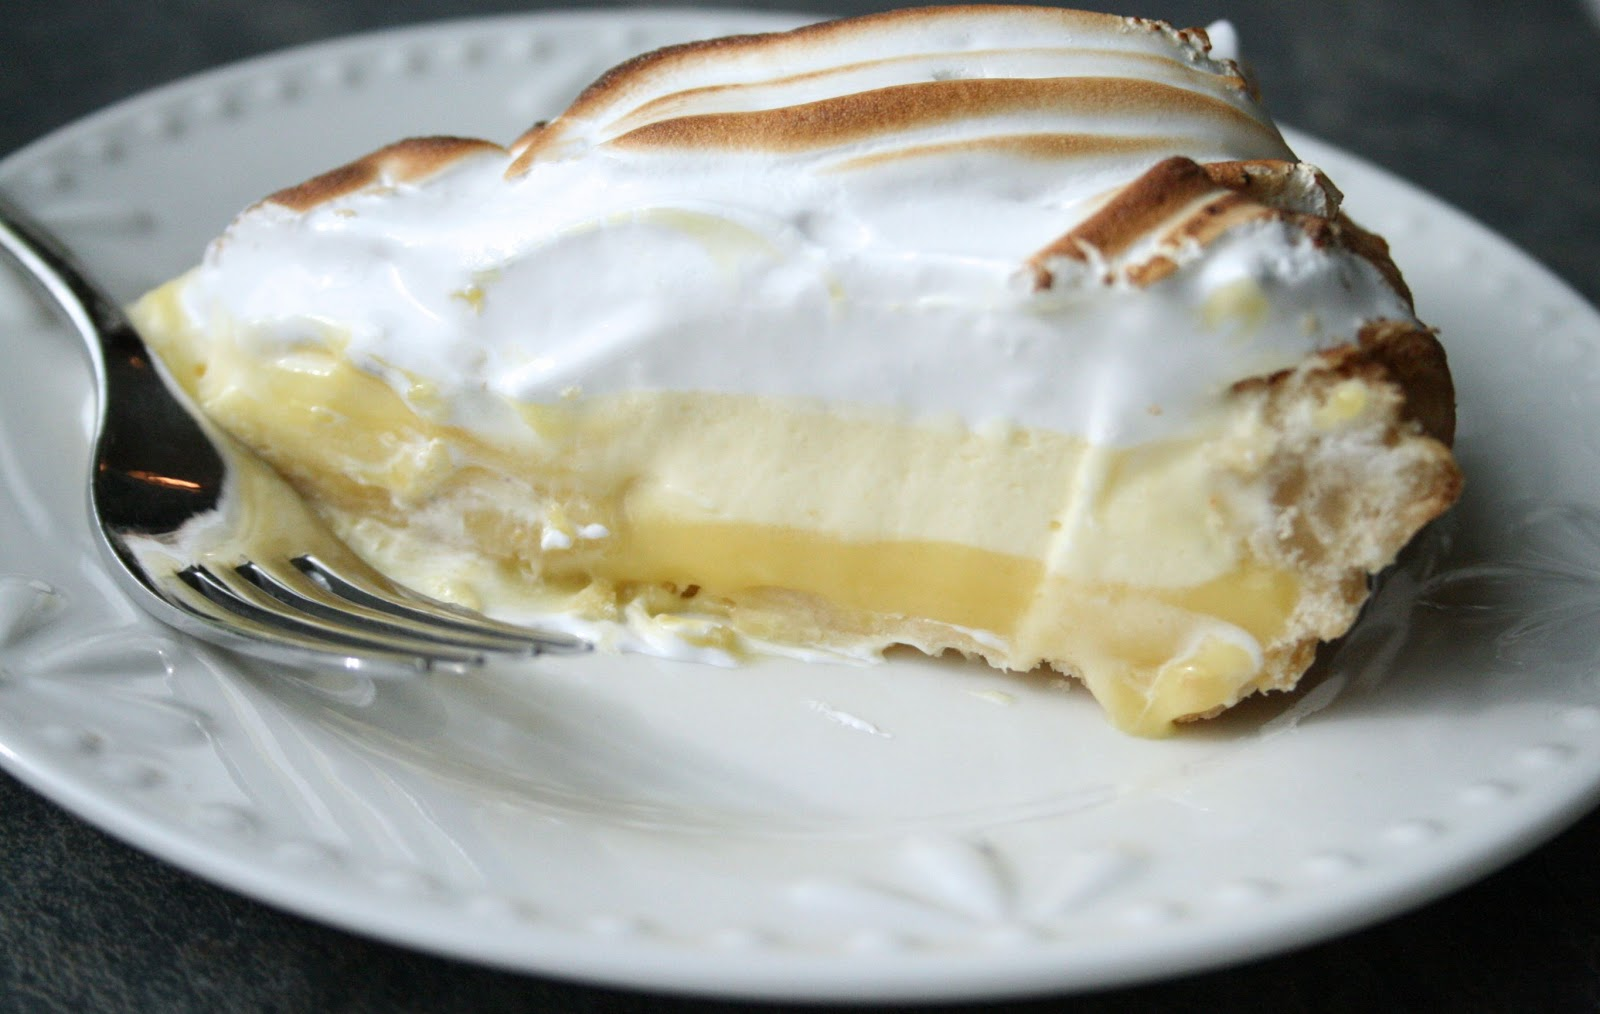 tune 'n fork: Lemon Cream Pie